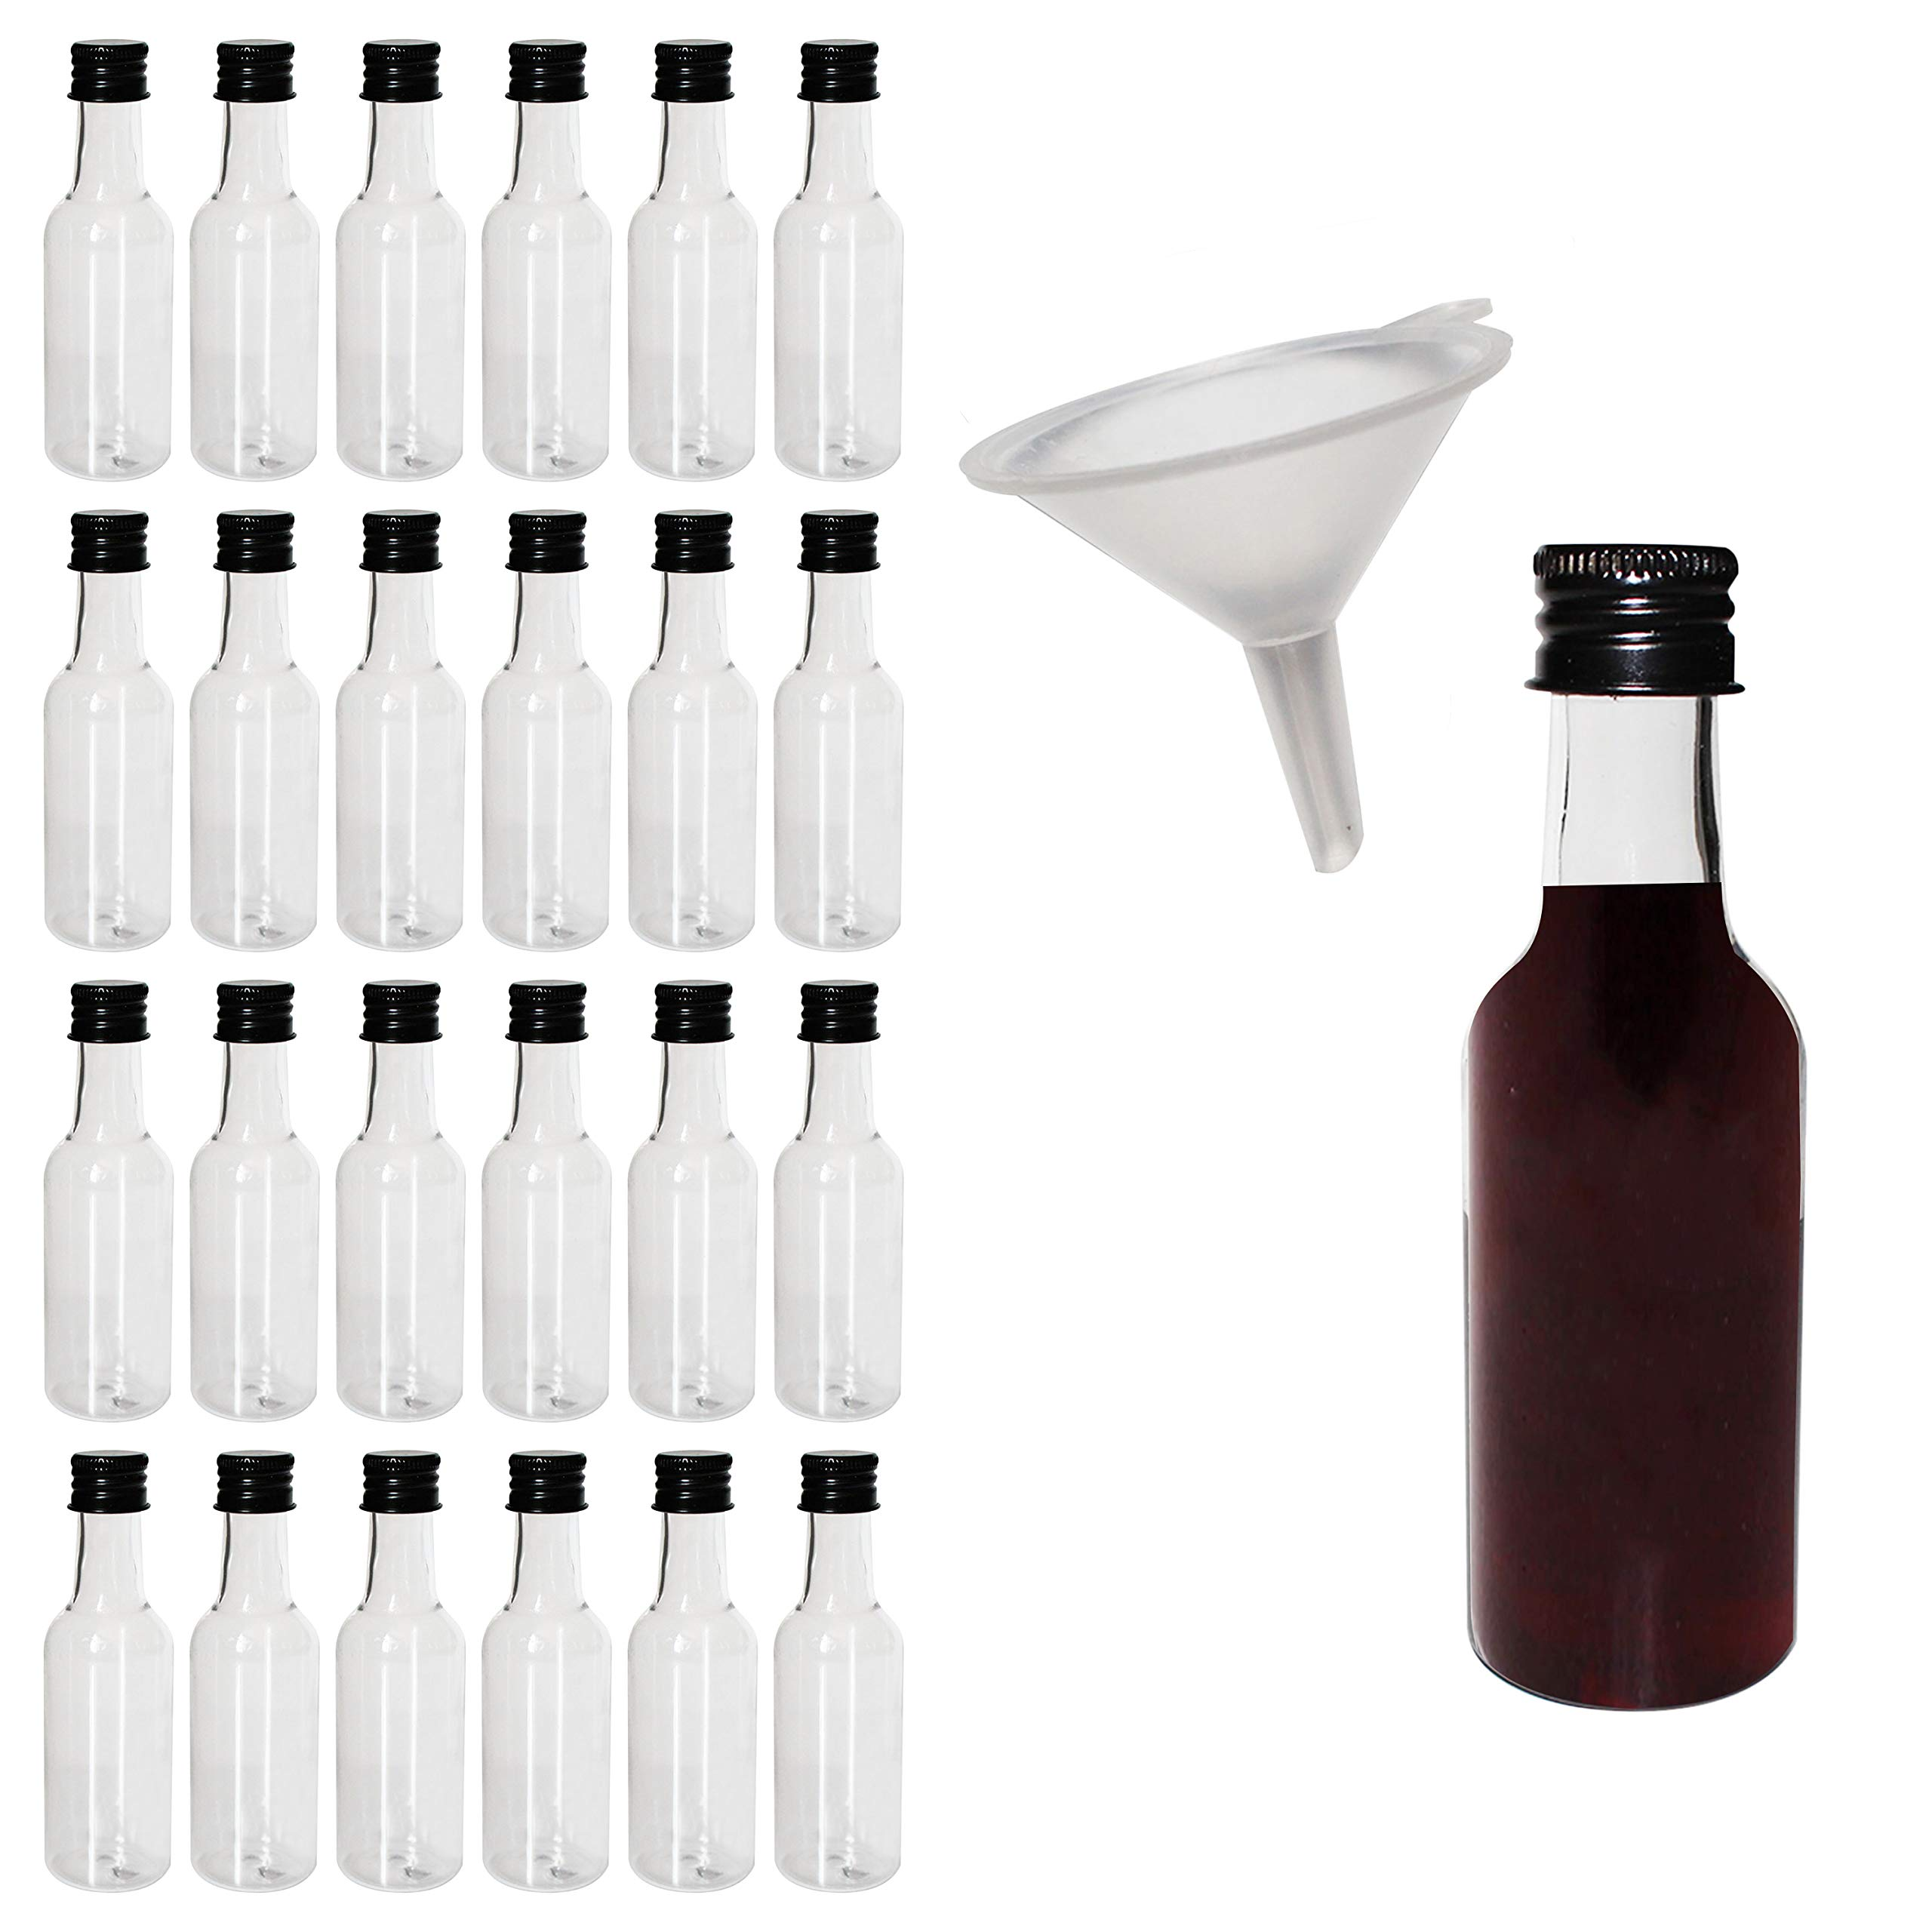 BELLE VOUS Liquor Bottles (48 Pcs)- Mini 55ml Plastic Empty Liquor Bottles with Black Cap and Liquid Funnel for Pouring Liquid in Bottles - Great for Weddings, Party Favors, Arts, Paints and Events